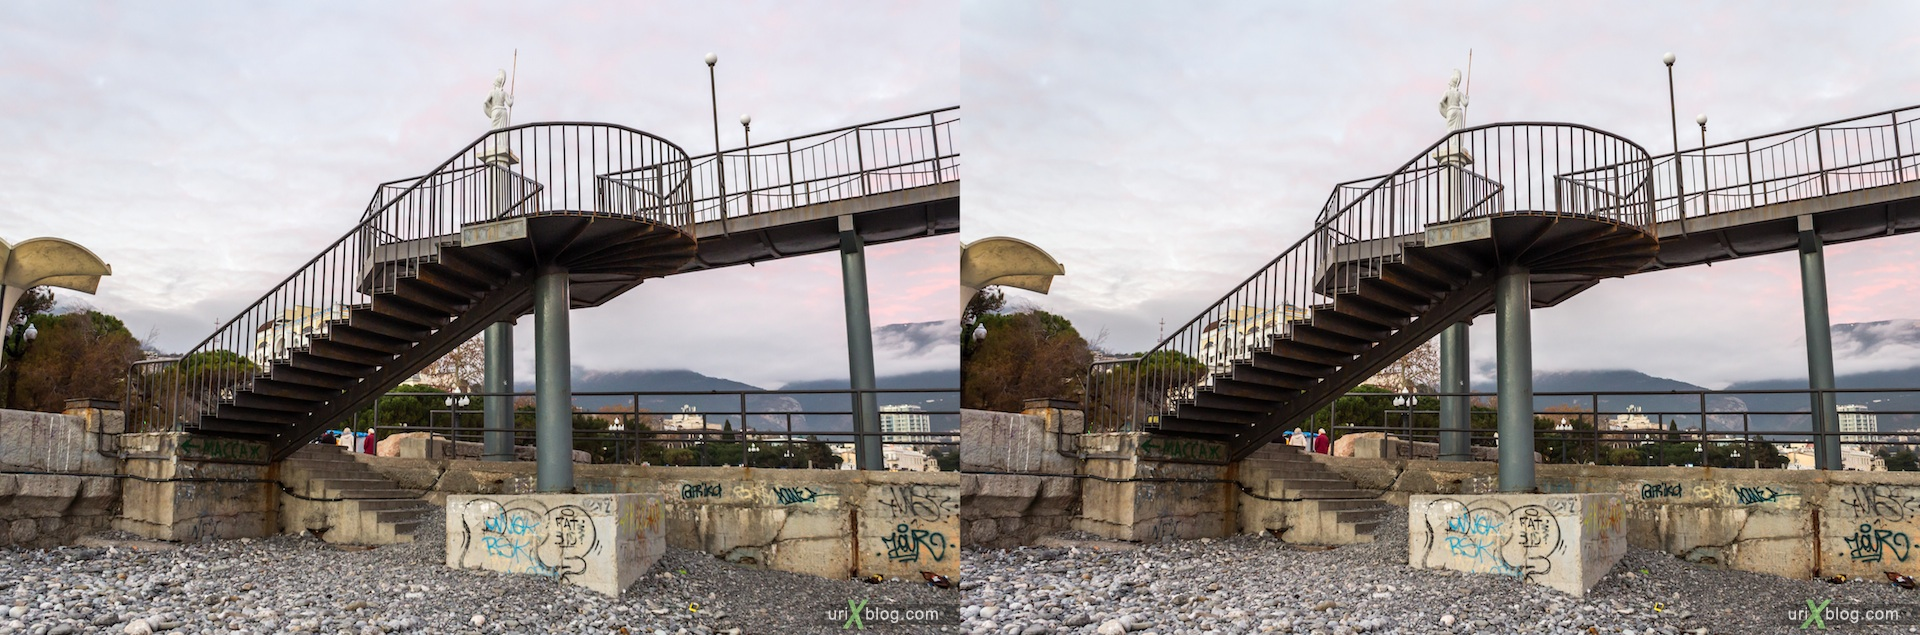 2012, Yalta, beach, Imeni Lenina embankment, groyne, evening, coast city, Crimea, Ukraine, 3D, stereo pair, cross-eyed, crossview, cross view stereo pair, stereoscopic